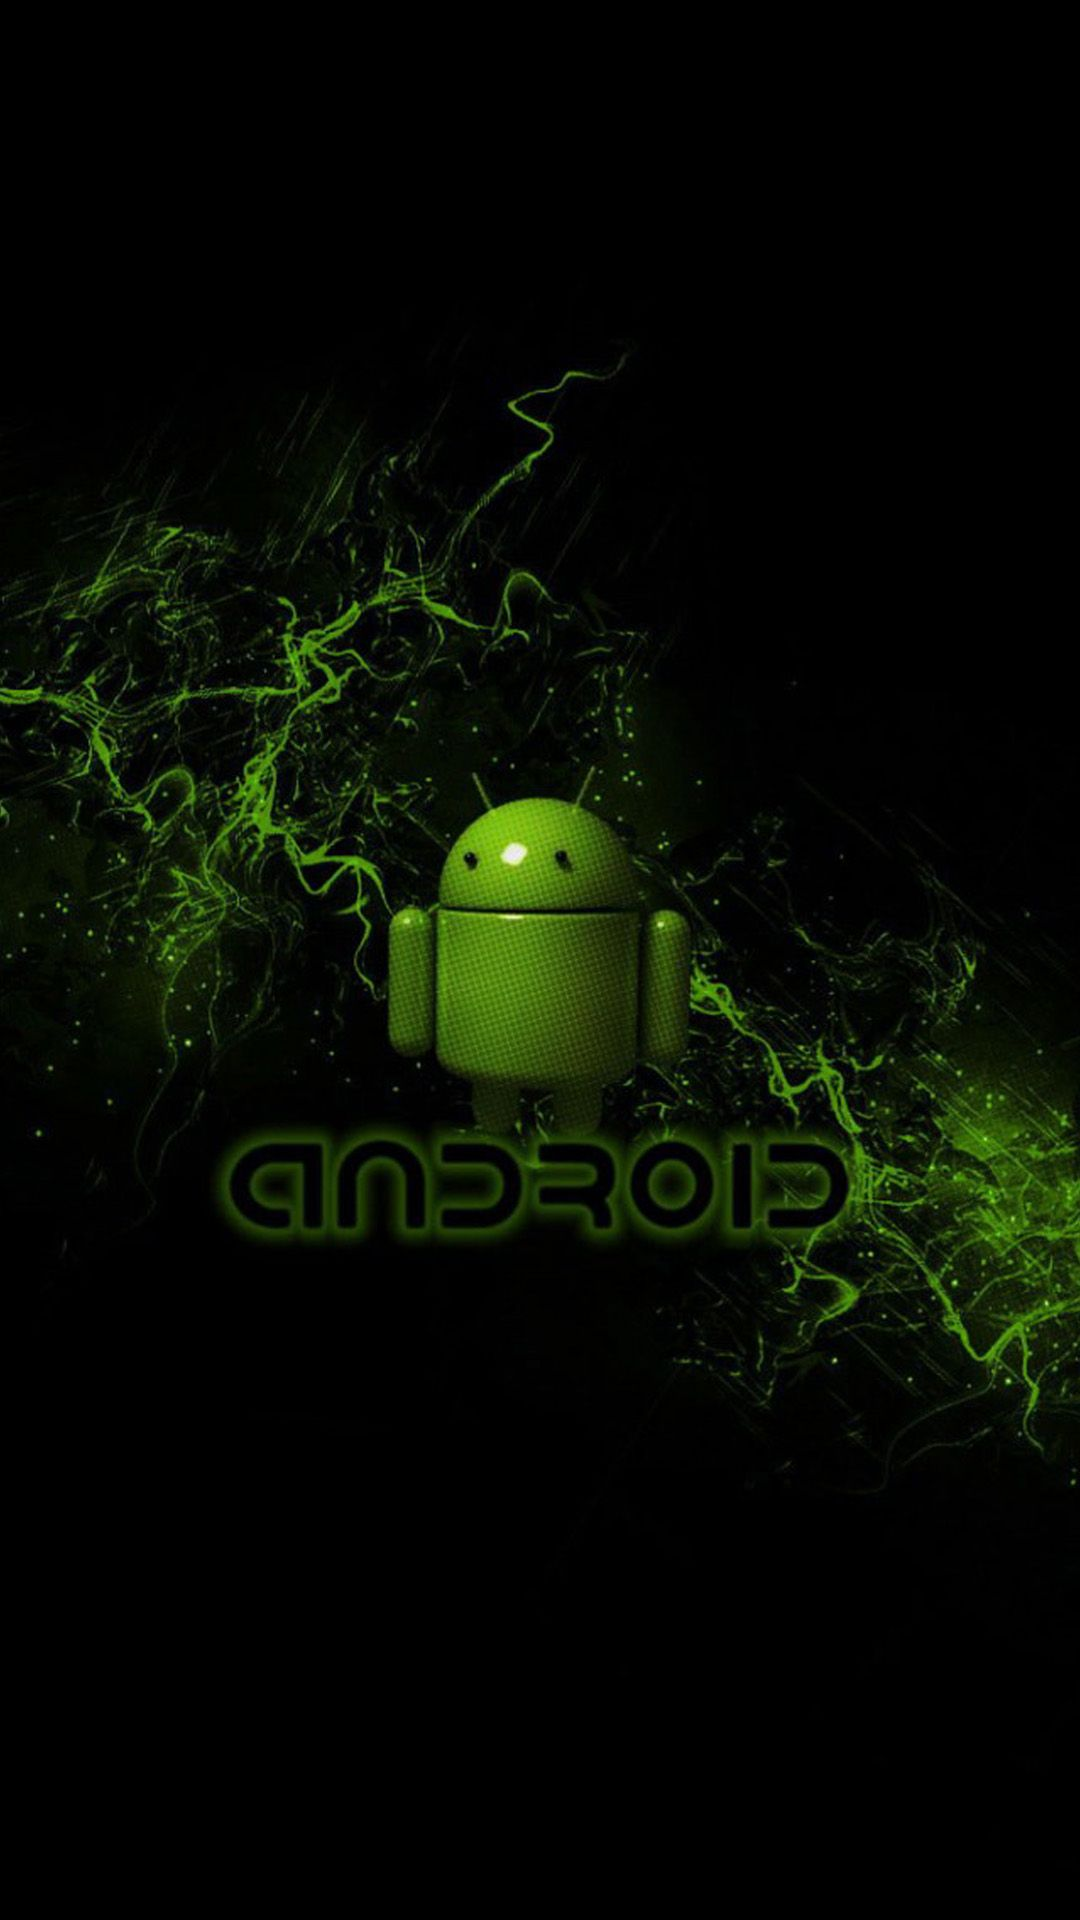 1080x1920 Android Green Smoke Smartphone Wallpapers HD ⋆ GetPhotos